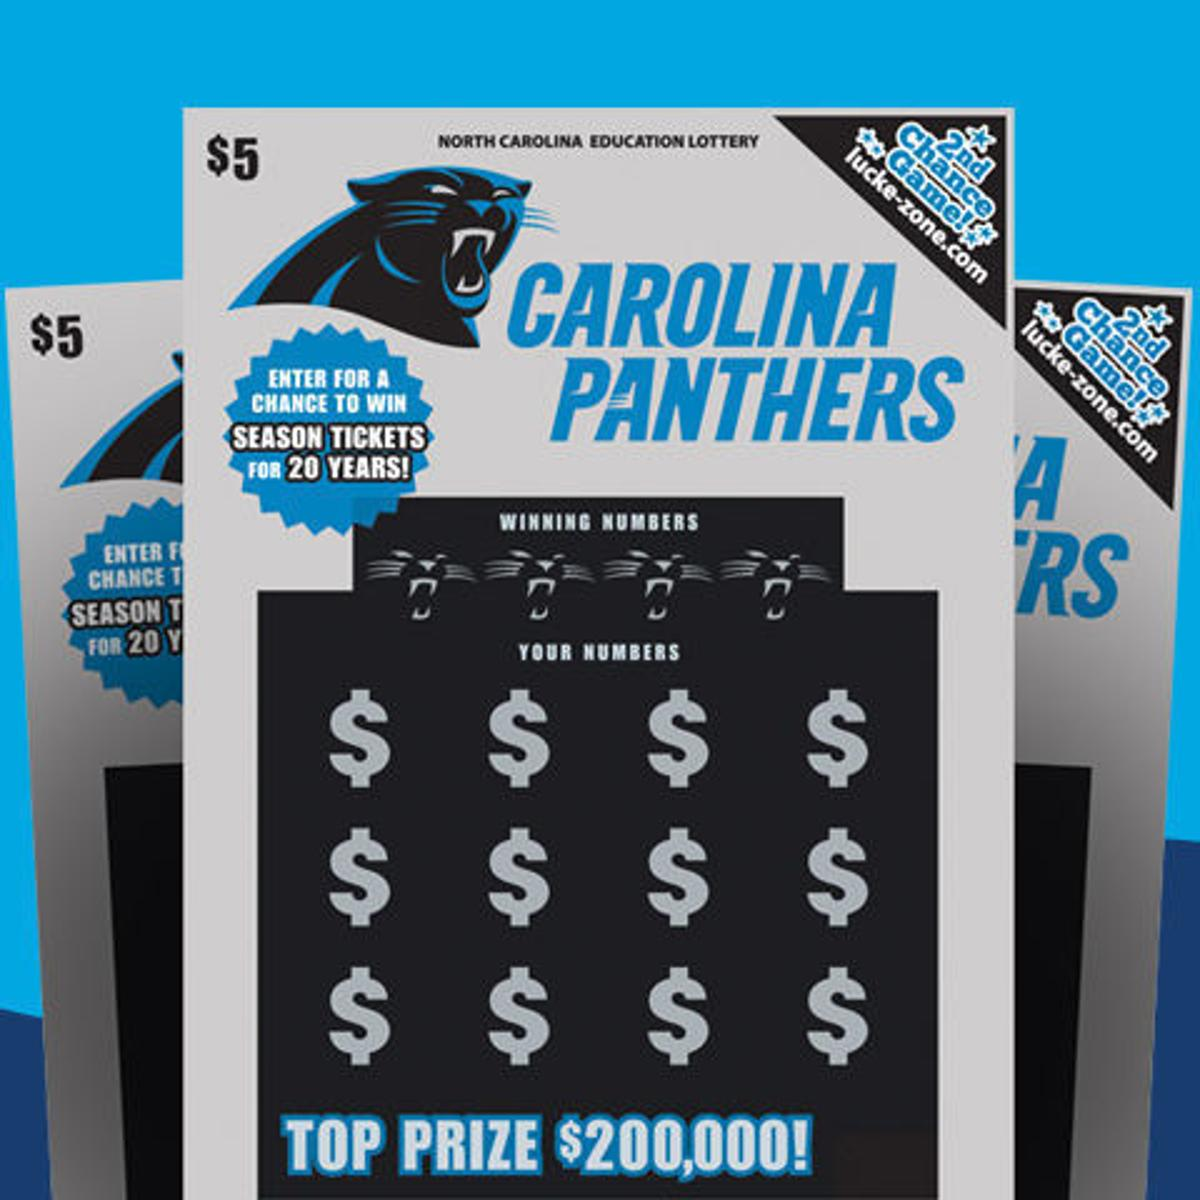 Panthers luxury suite will go to a second-chance lottery